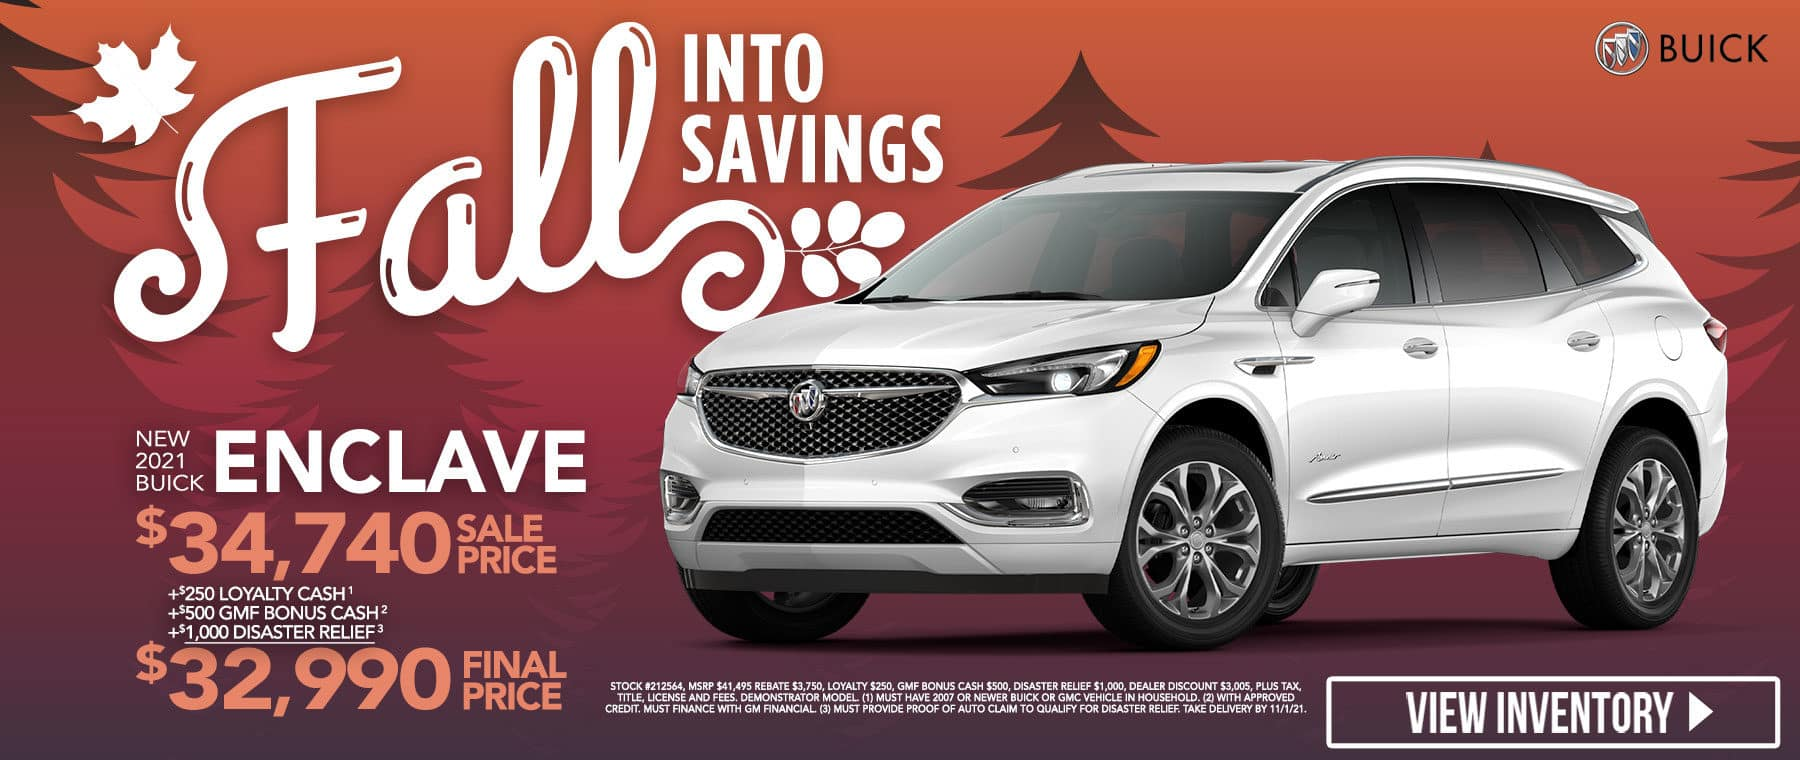 New 2021 Buick Enclave - $32990 Final Sale Price